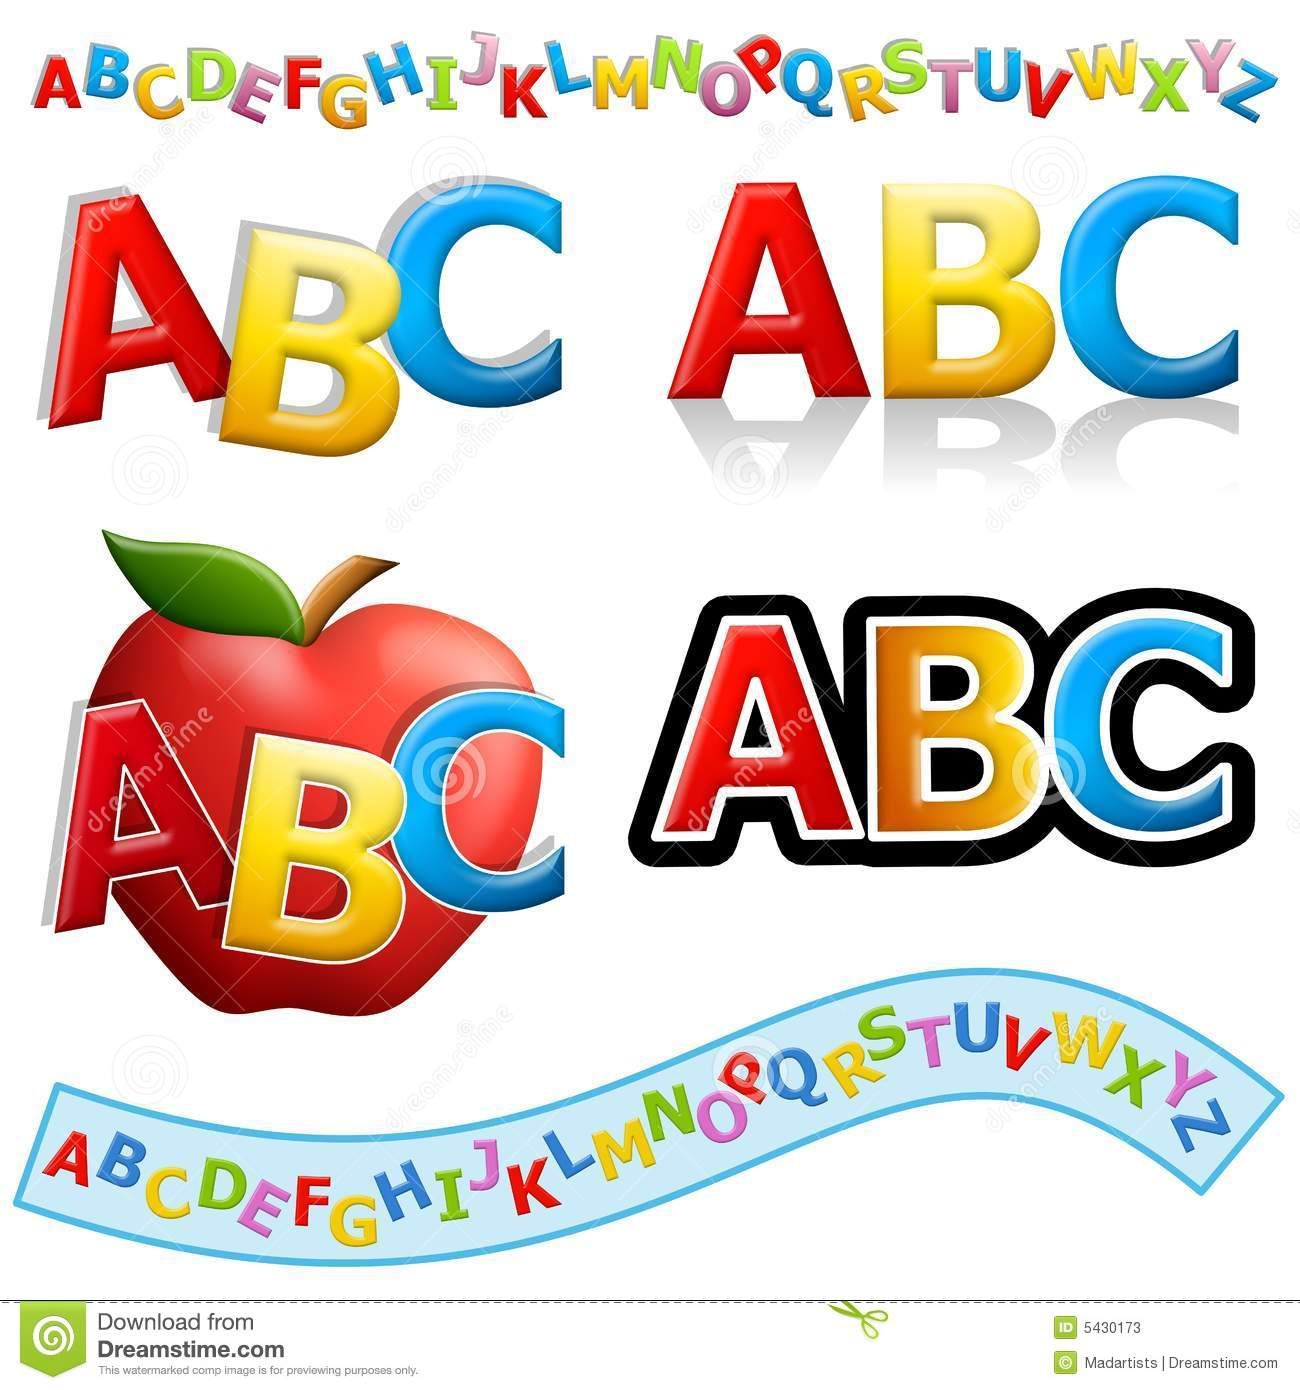 Abc 123 clipart free graphic royalty free stock Cliparts abc - ClipartFest graphic royalty free stock